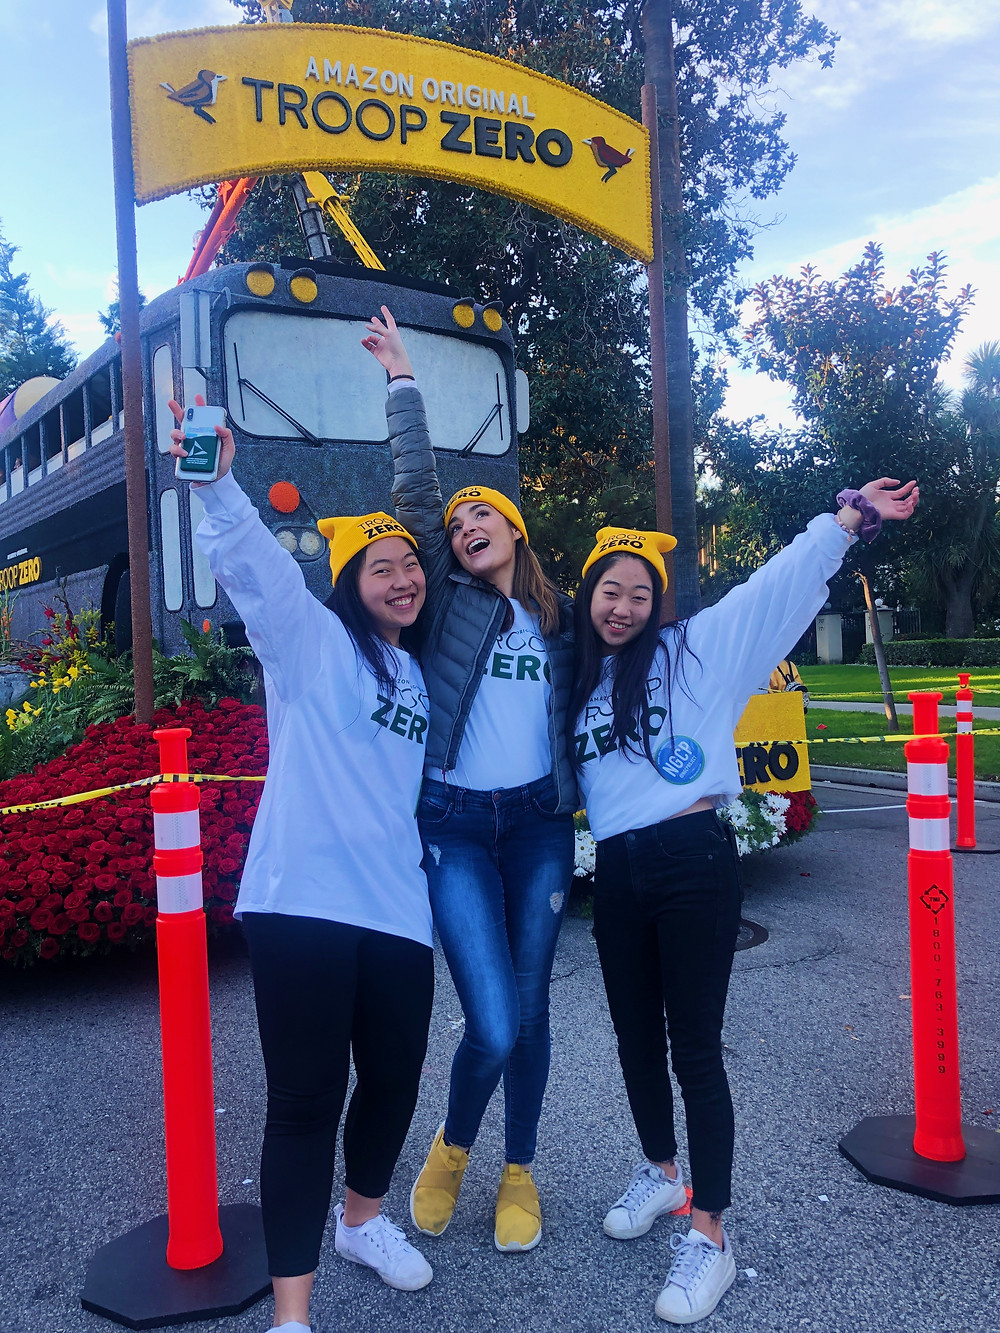 A few of our members who walked in the Pasadena Rose Bowl Parade this year with Amazon Studios! Such a fun day.